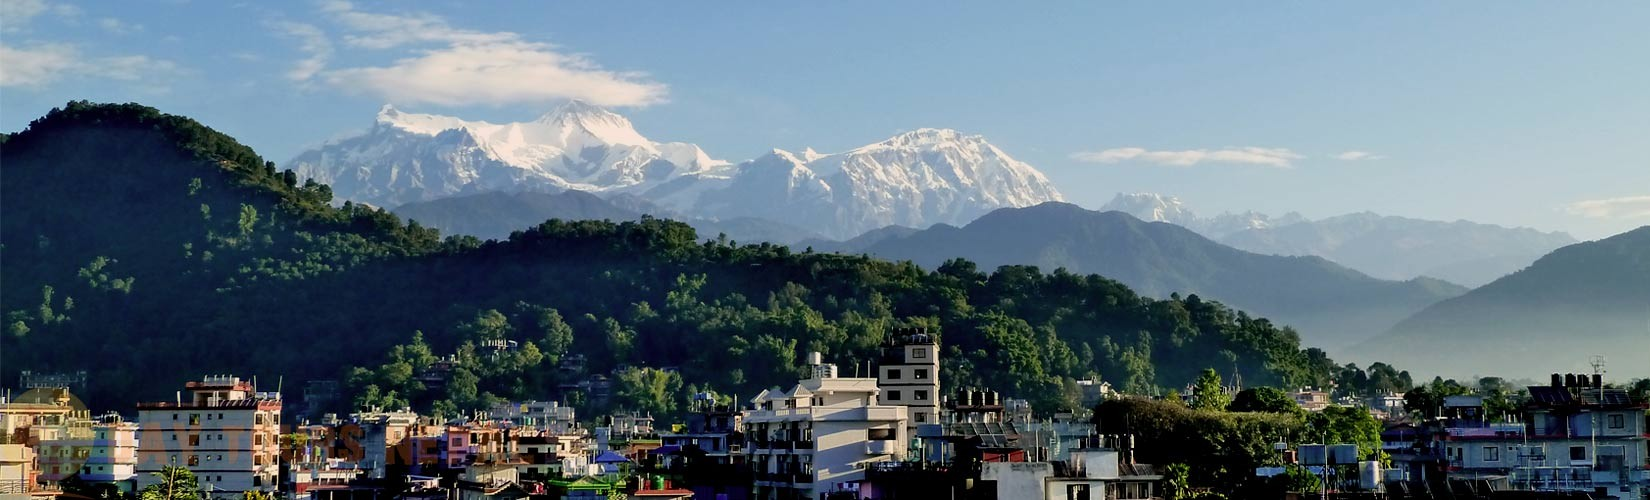 Pokhara City Tour Day Tours Nepal